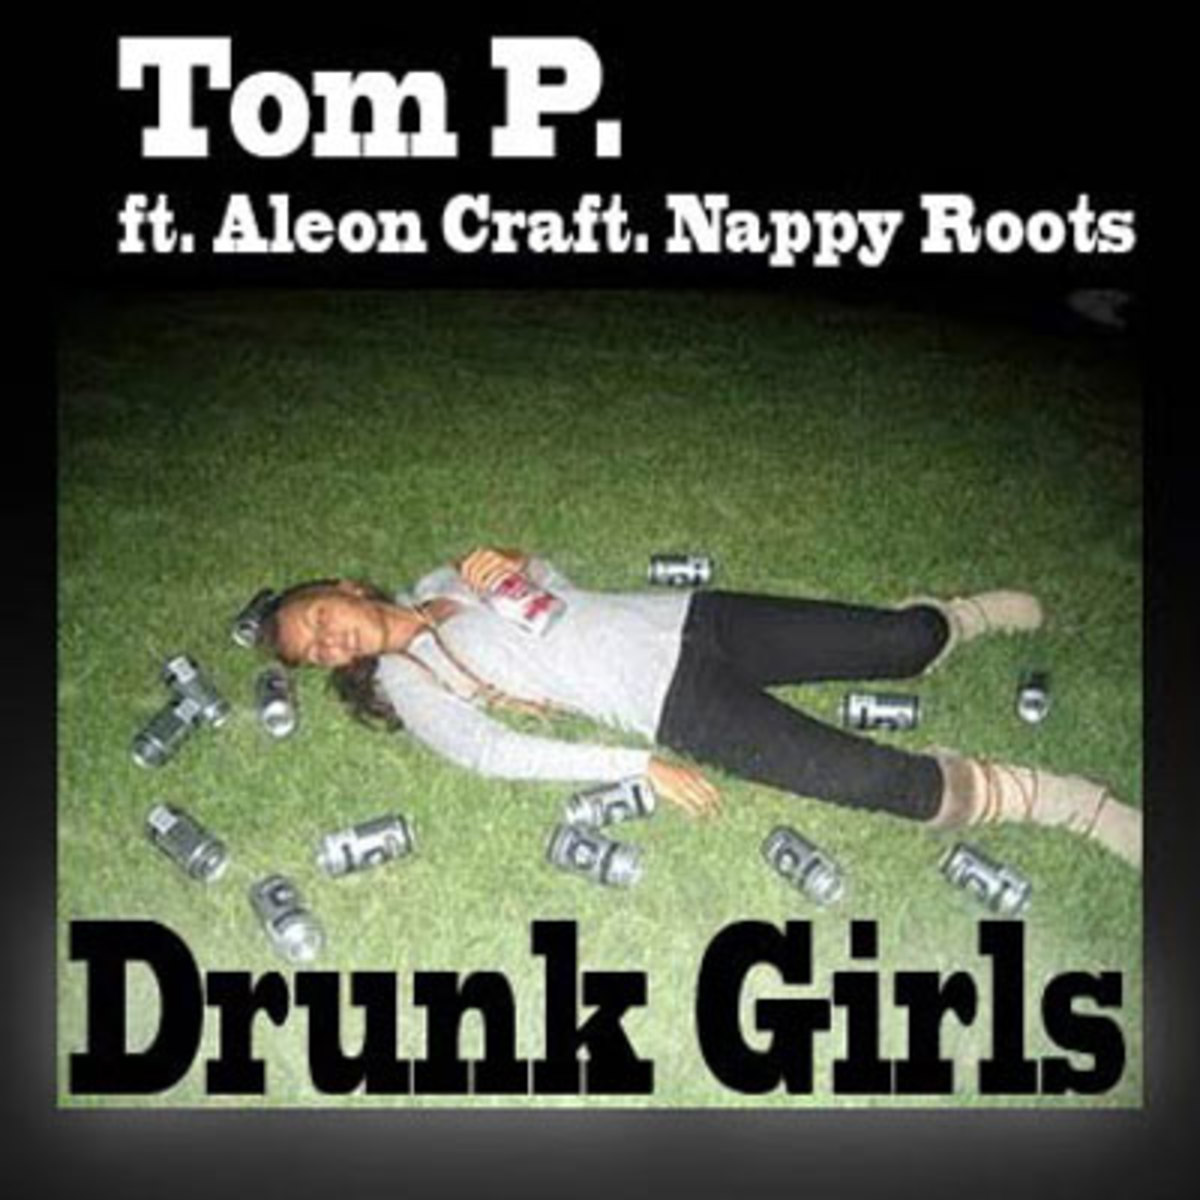 tomp-drunkgirls.jpg